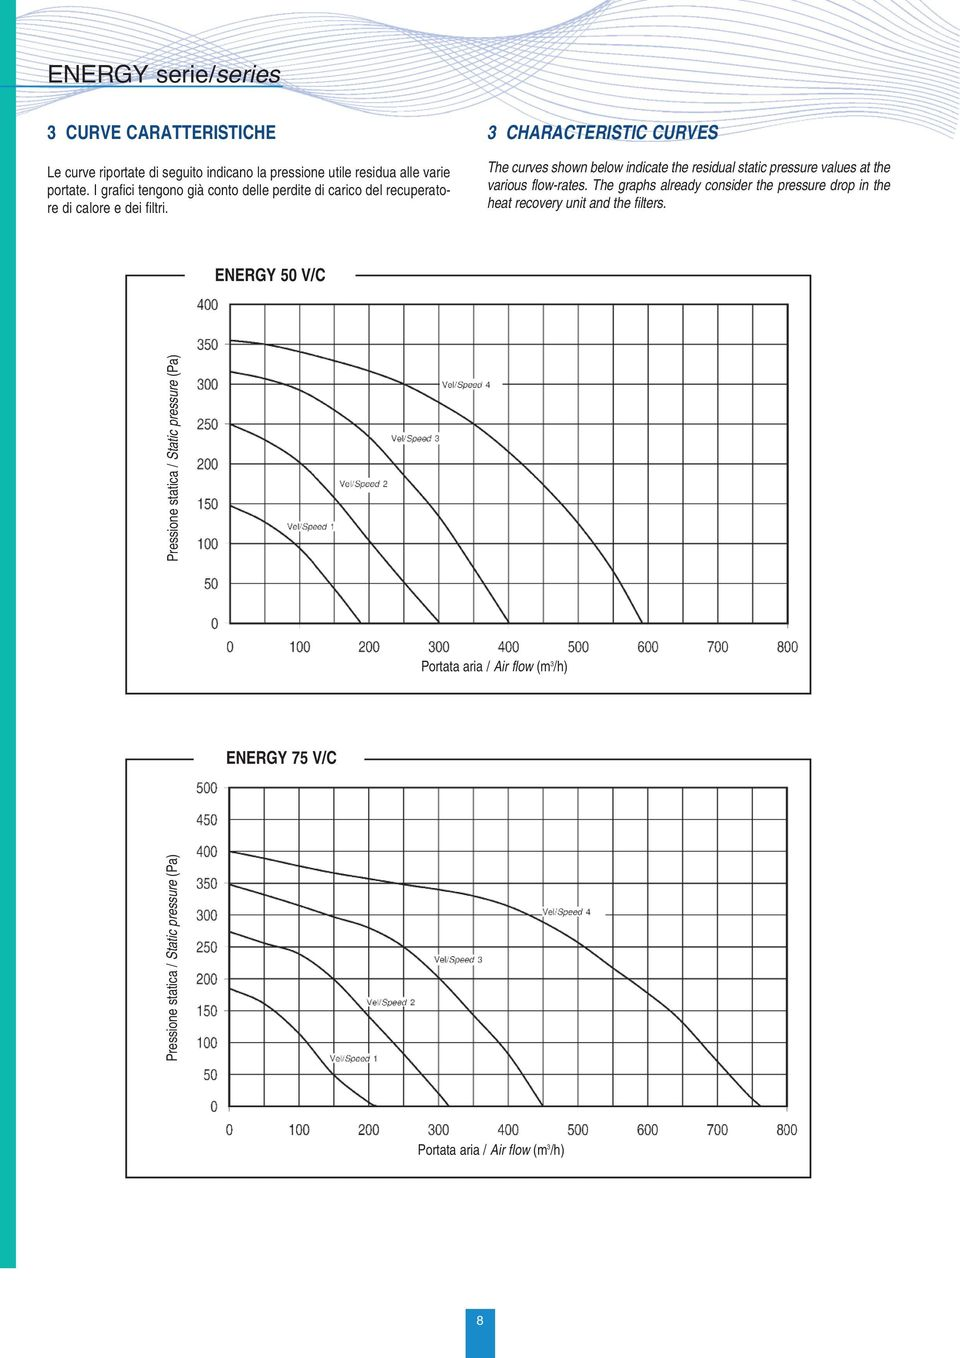 3 CHARACTERISTIC CURVES The curves shown below indicate the residual static pressure values at the various flow-rates.